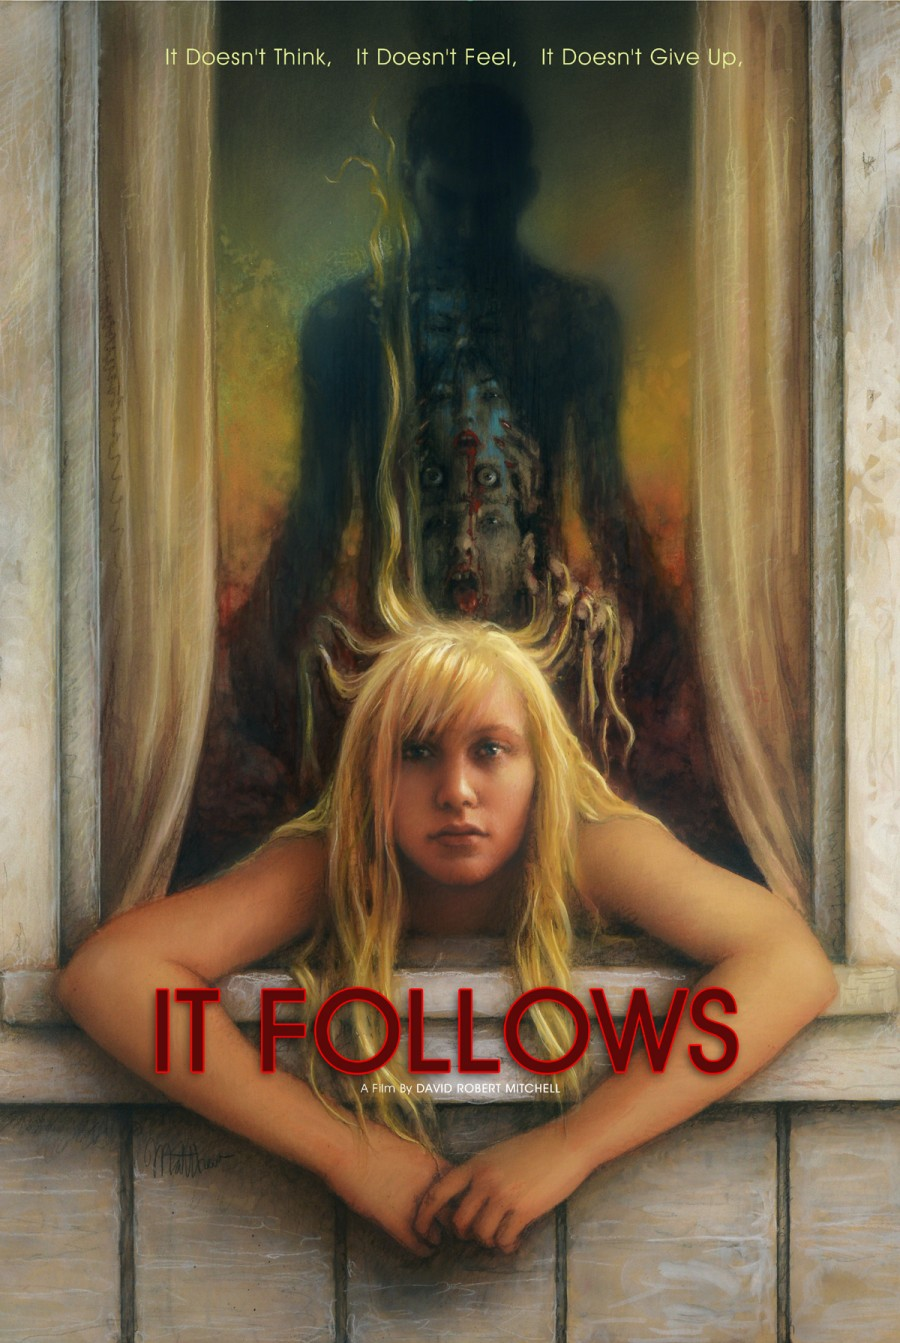 ItFollows_artV2_1_12kw_prf